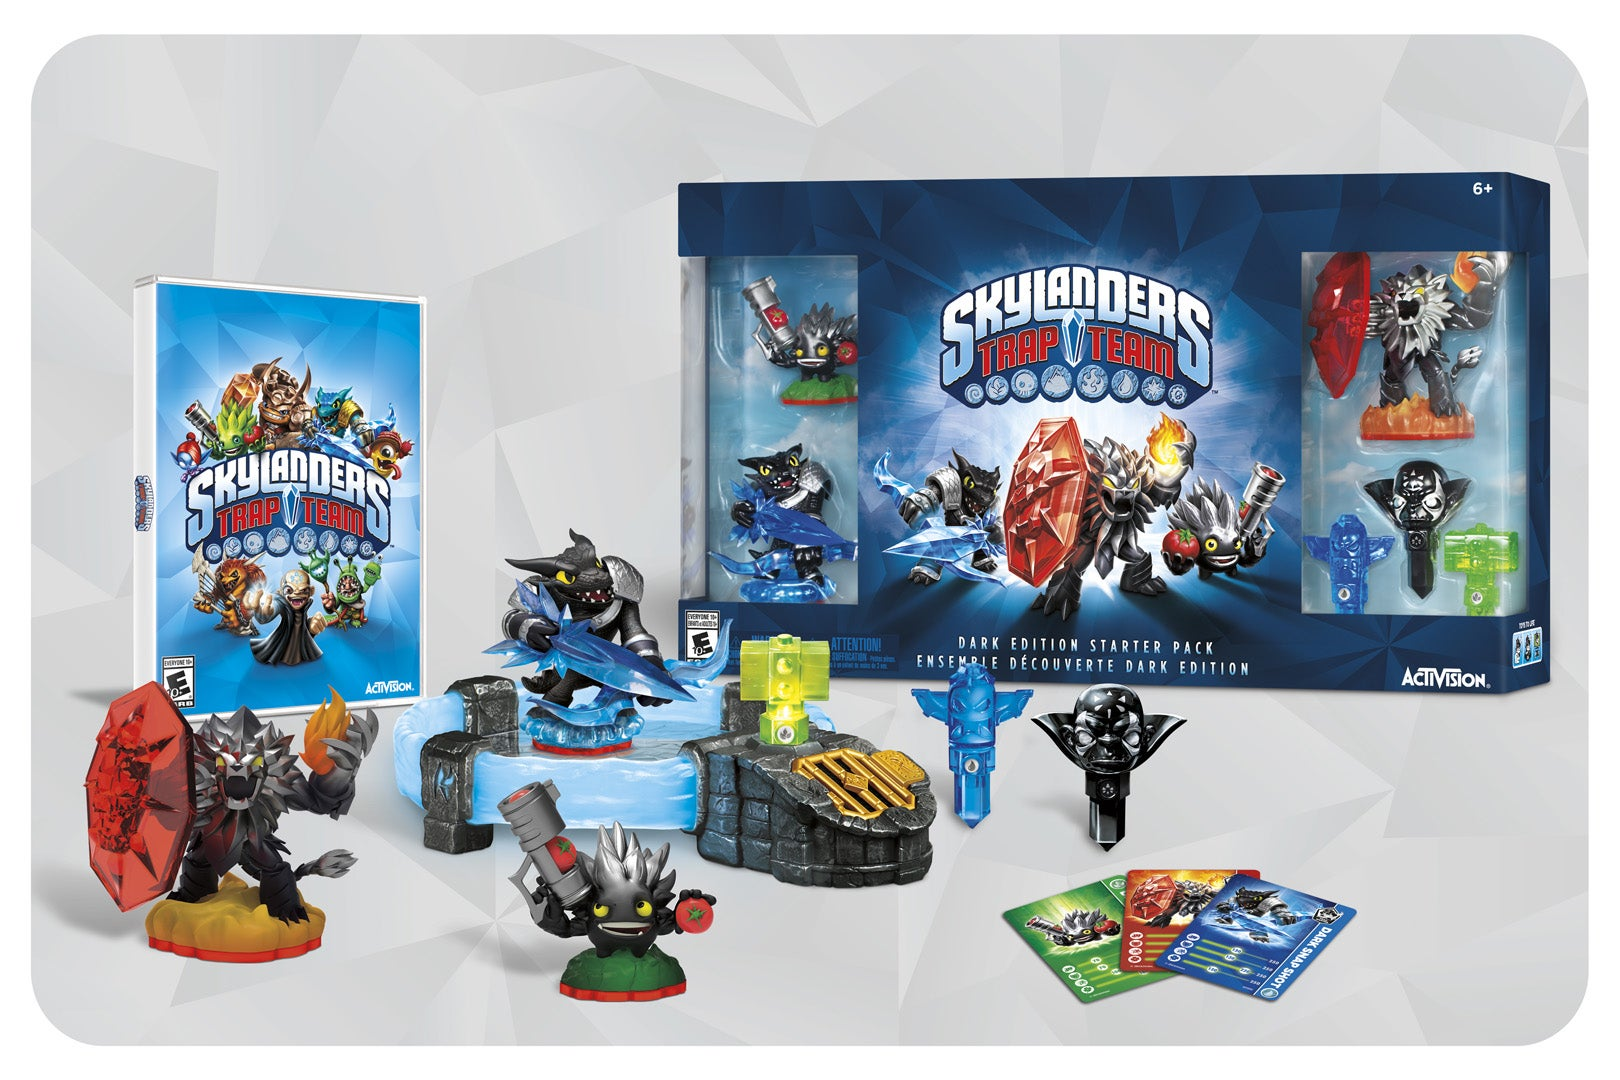 The Skylanders Dark Edition Isn't A GameStop Exclusive This Year